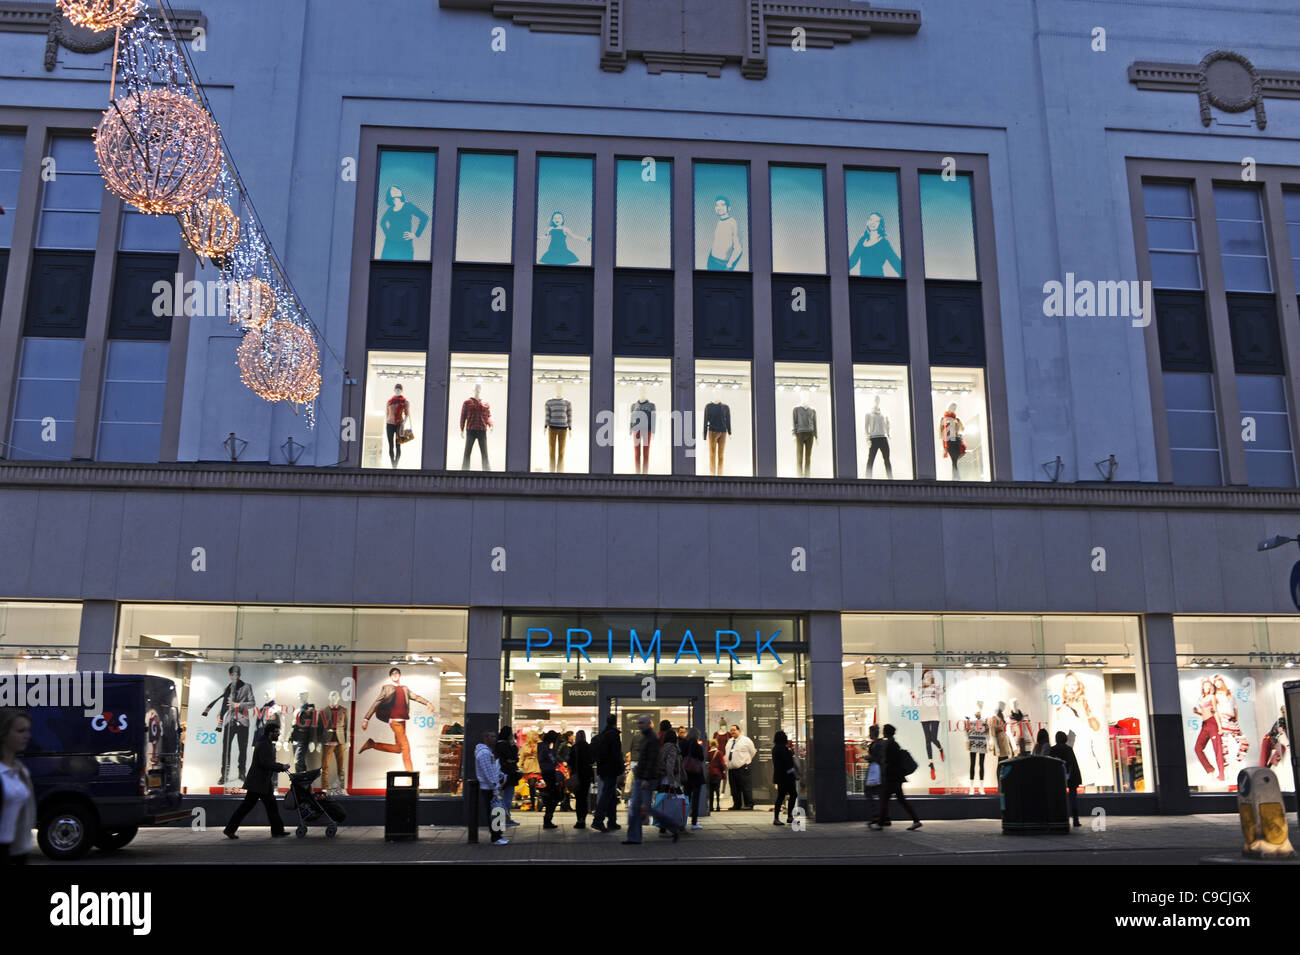 The Primark deparment store in Western Road Brighton at early evening UK Photograph taken November 2011 - Stock Image